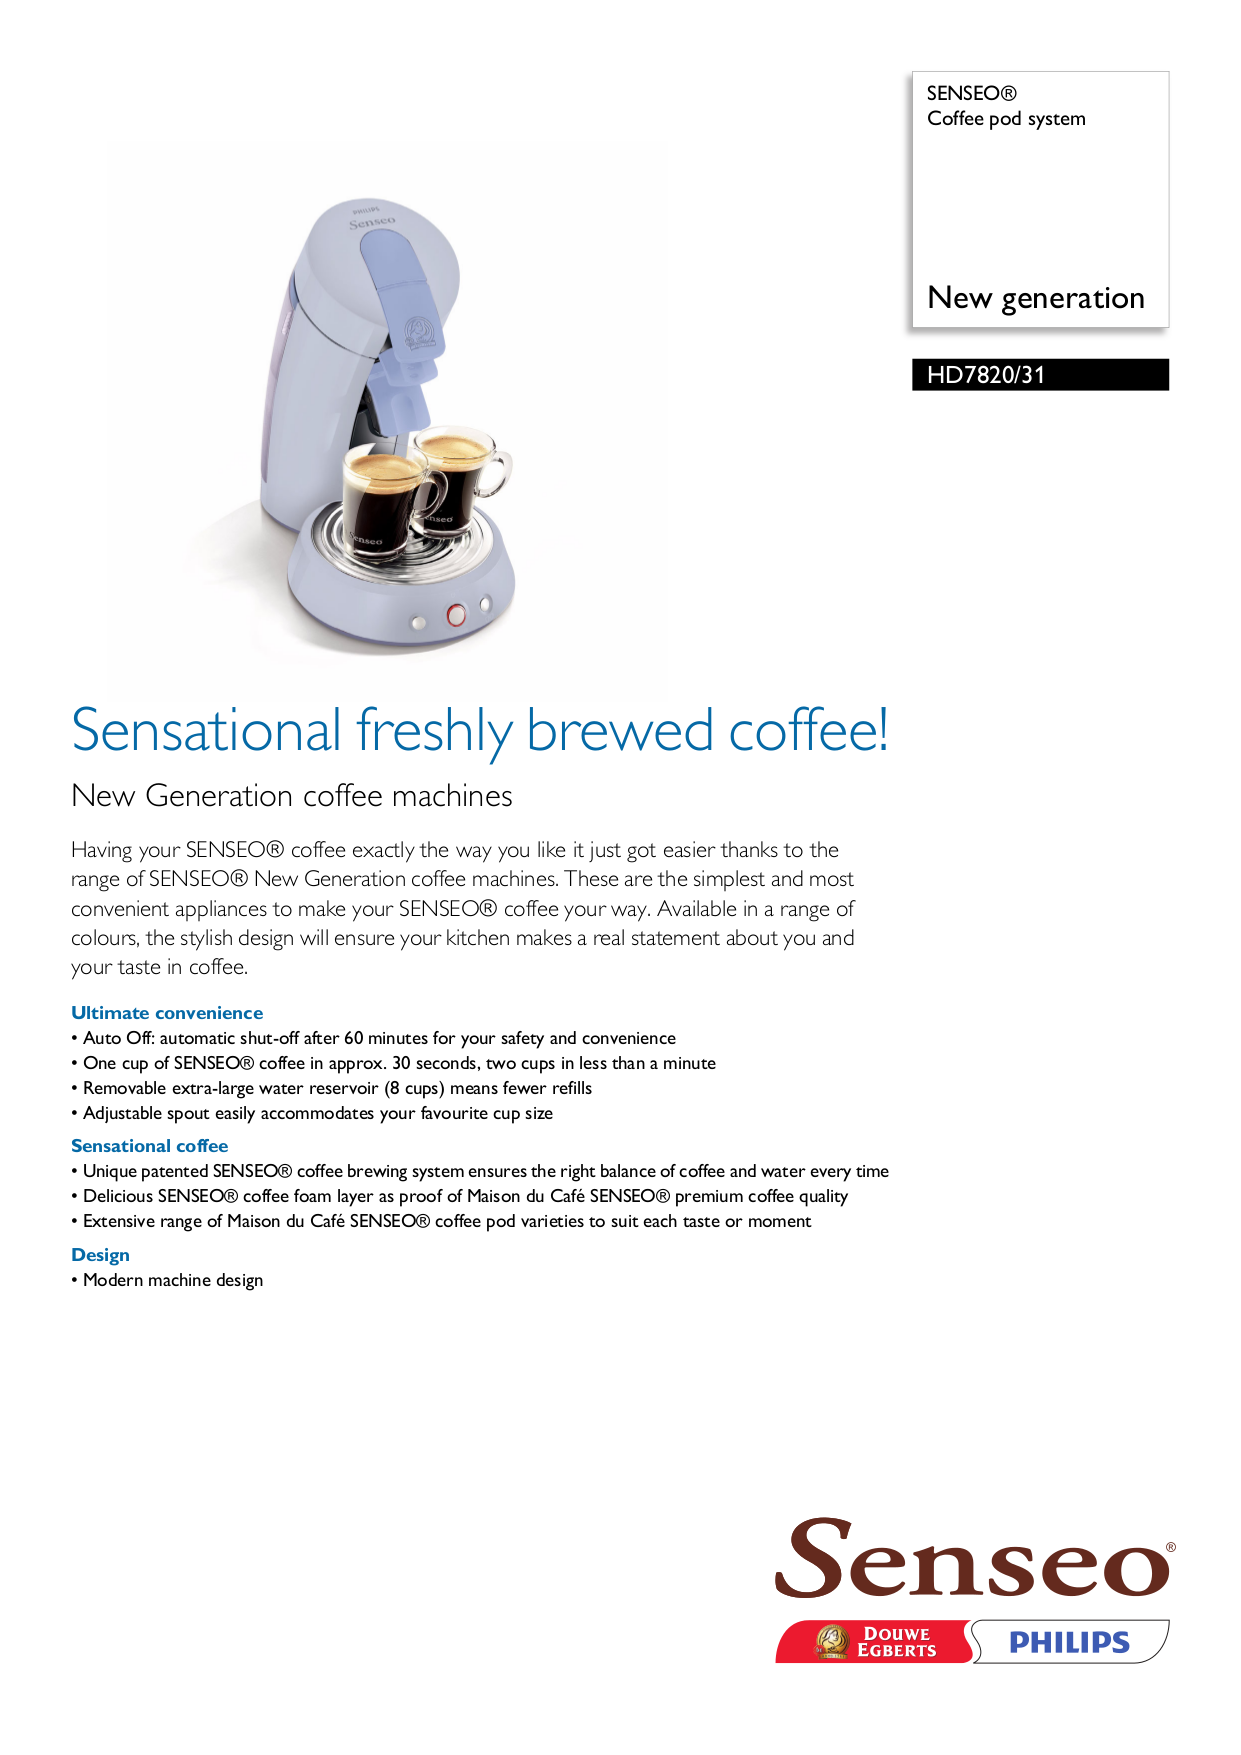 Senseo Coffee Maker Repair Manual : Download free pdf for Philips Senseo HD7820 Coffee Maker manual